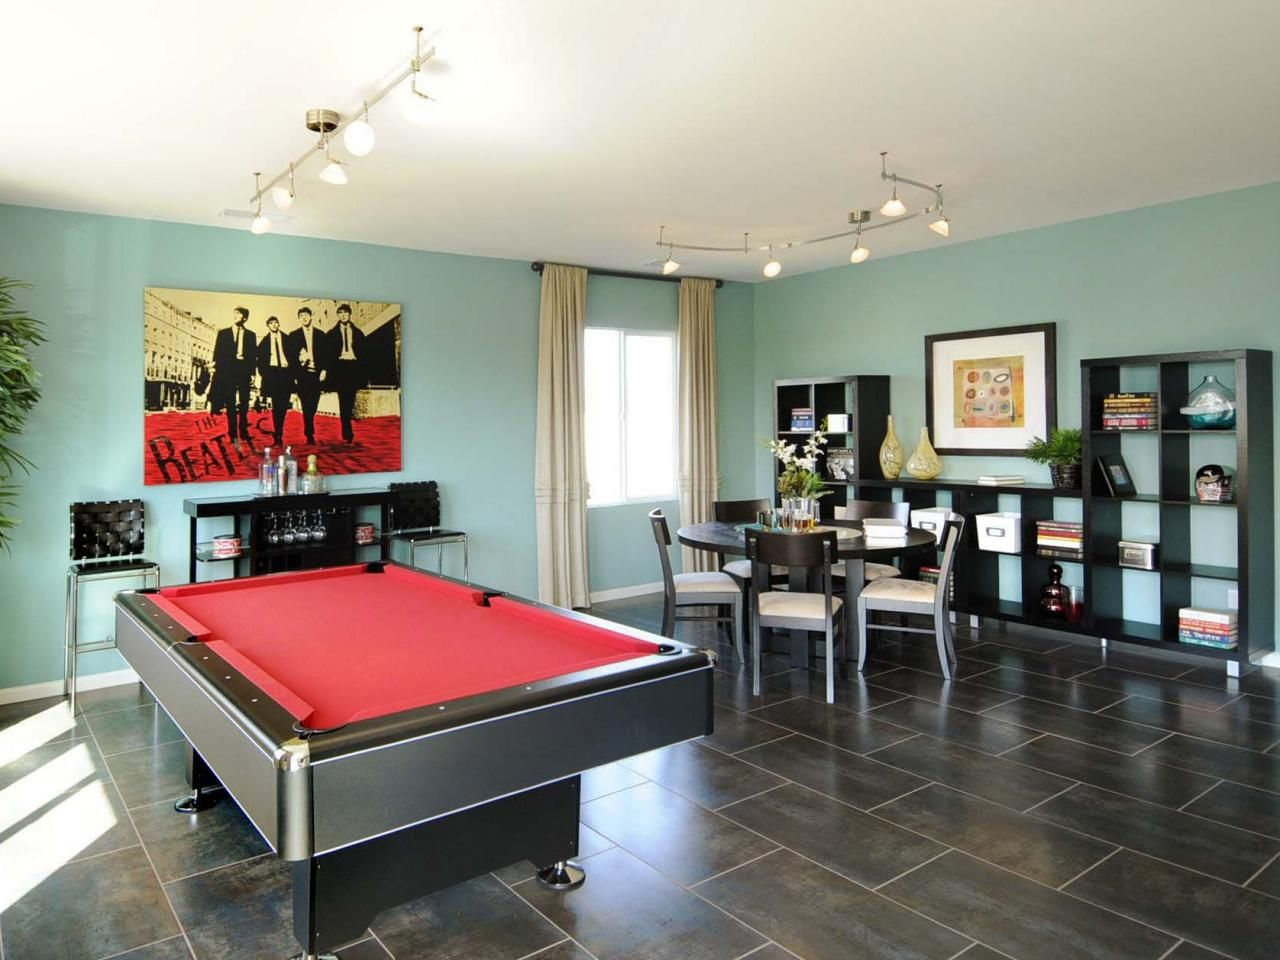 Kids Game Room Ideas Game Rooms For Kids And Family Game Room Family Game Room Decor Game Room Furniture